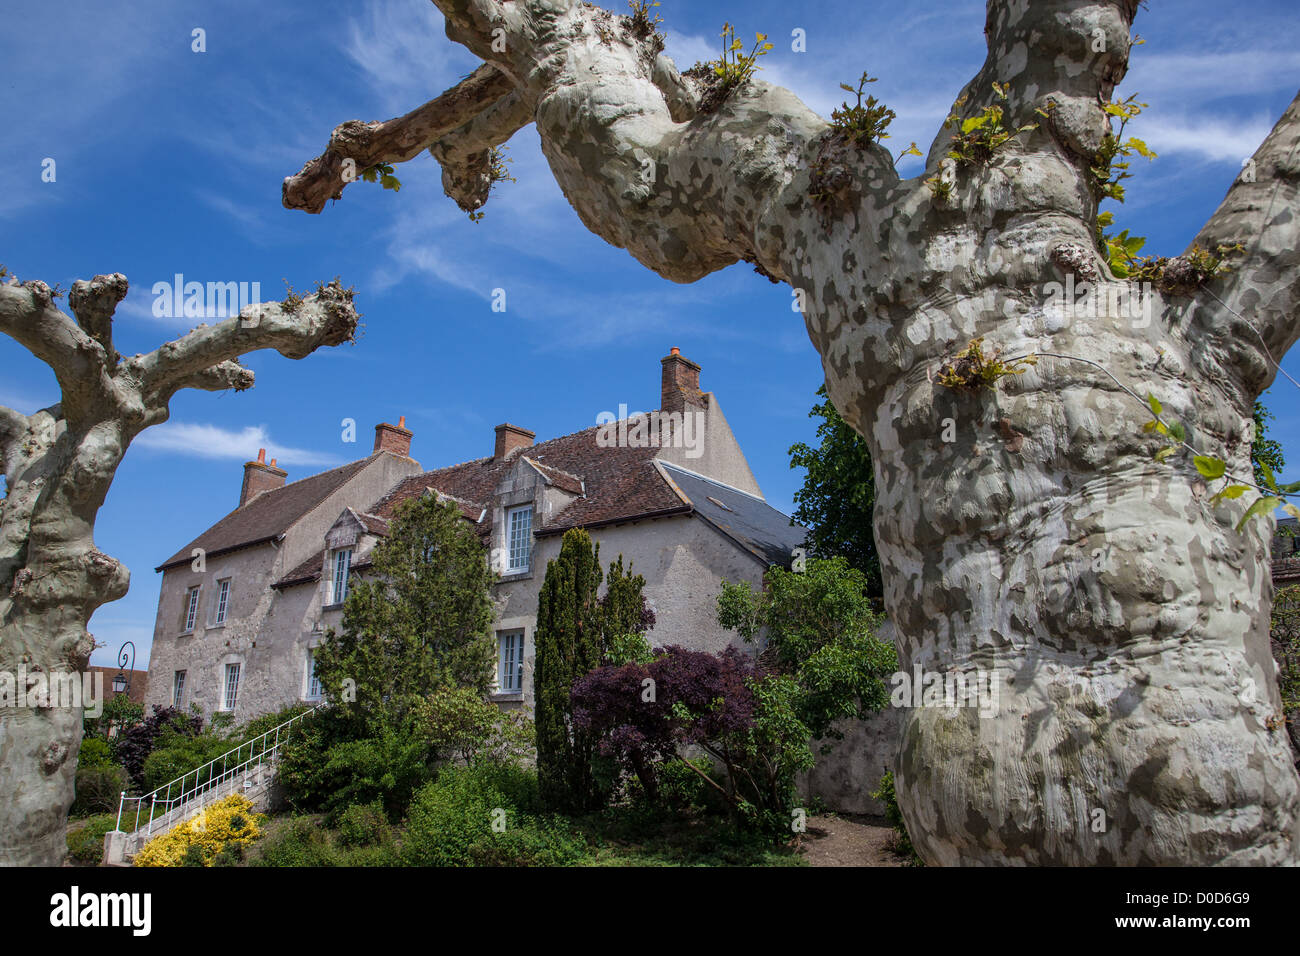 HUNDRED-YEAR-OLD SYCAMORES IN THE VILLAGE OF SAINT-BENOIT-SUR-LOIRE LOIRET (45) FRANCE - Stock Image